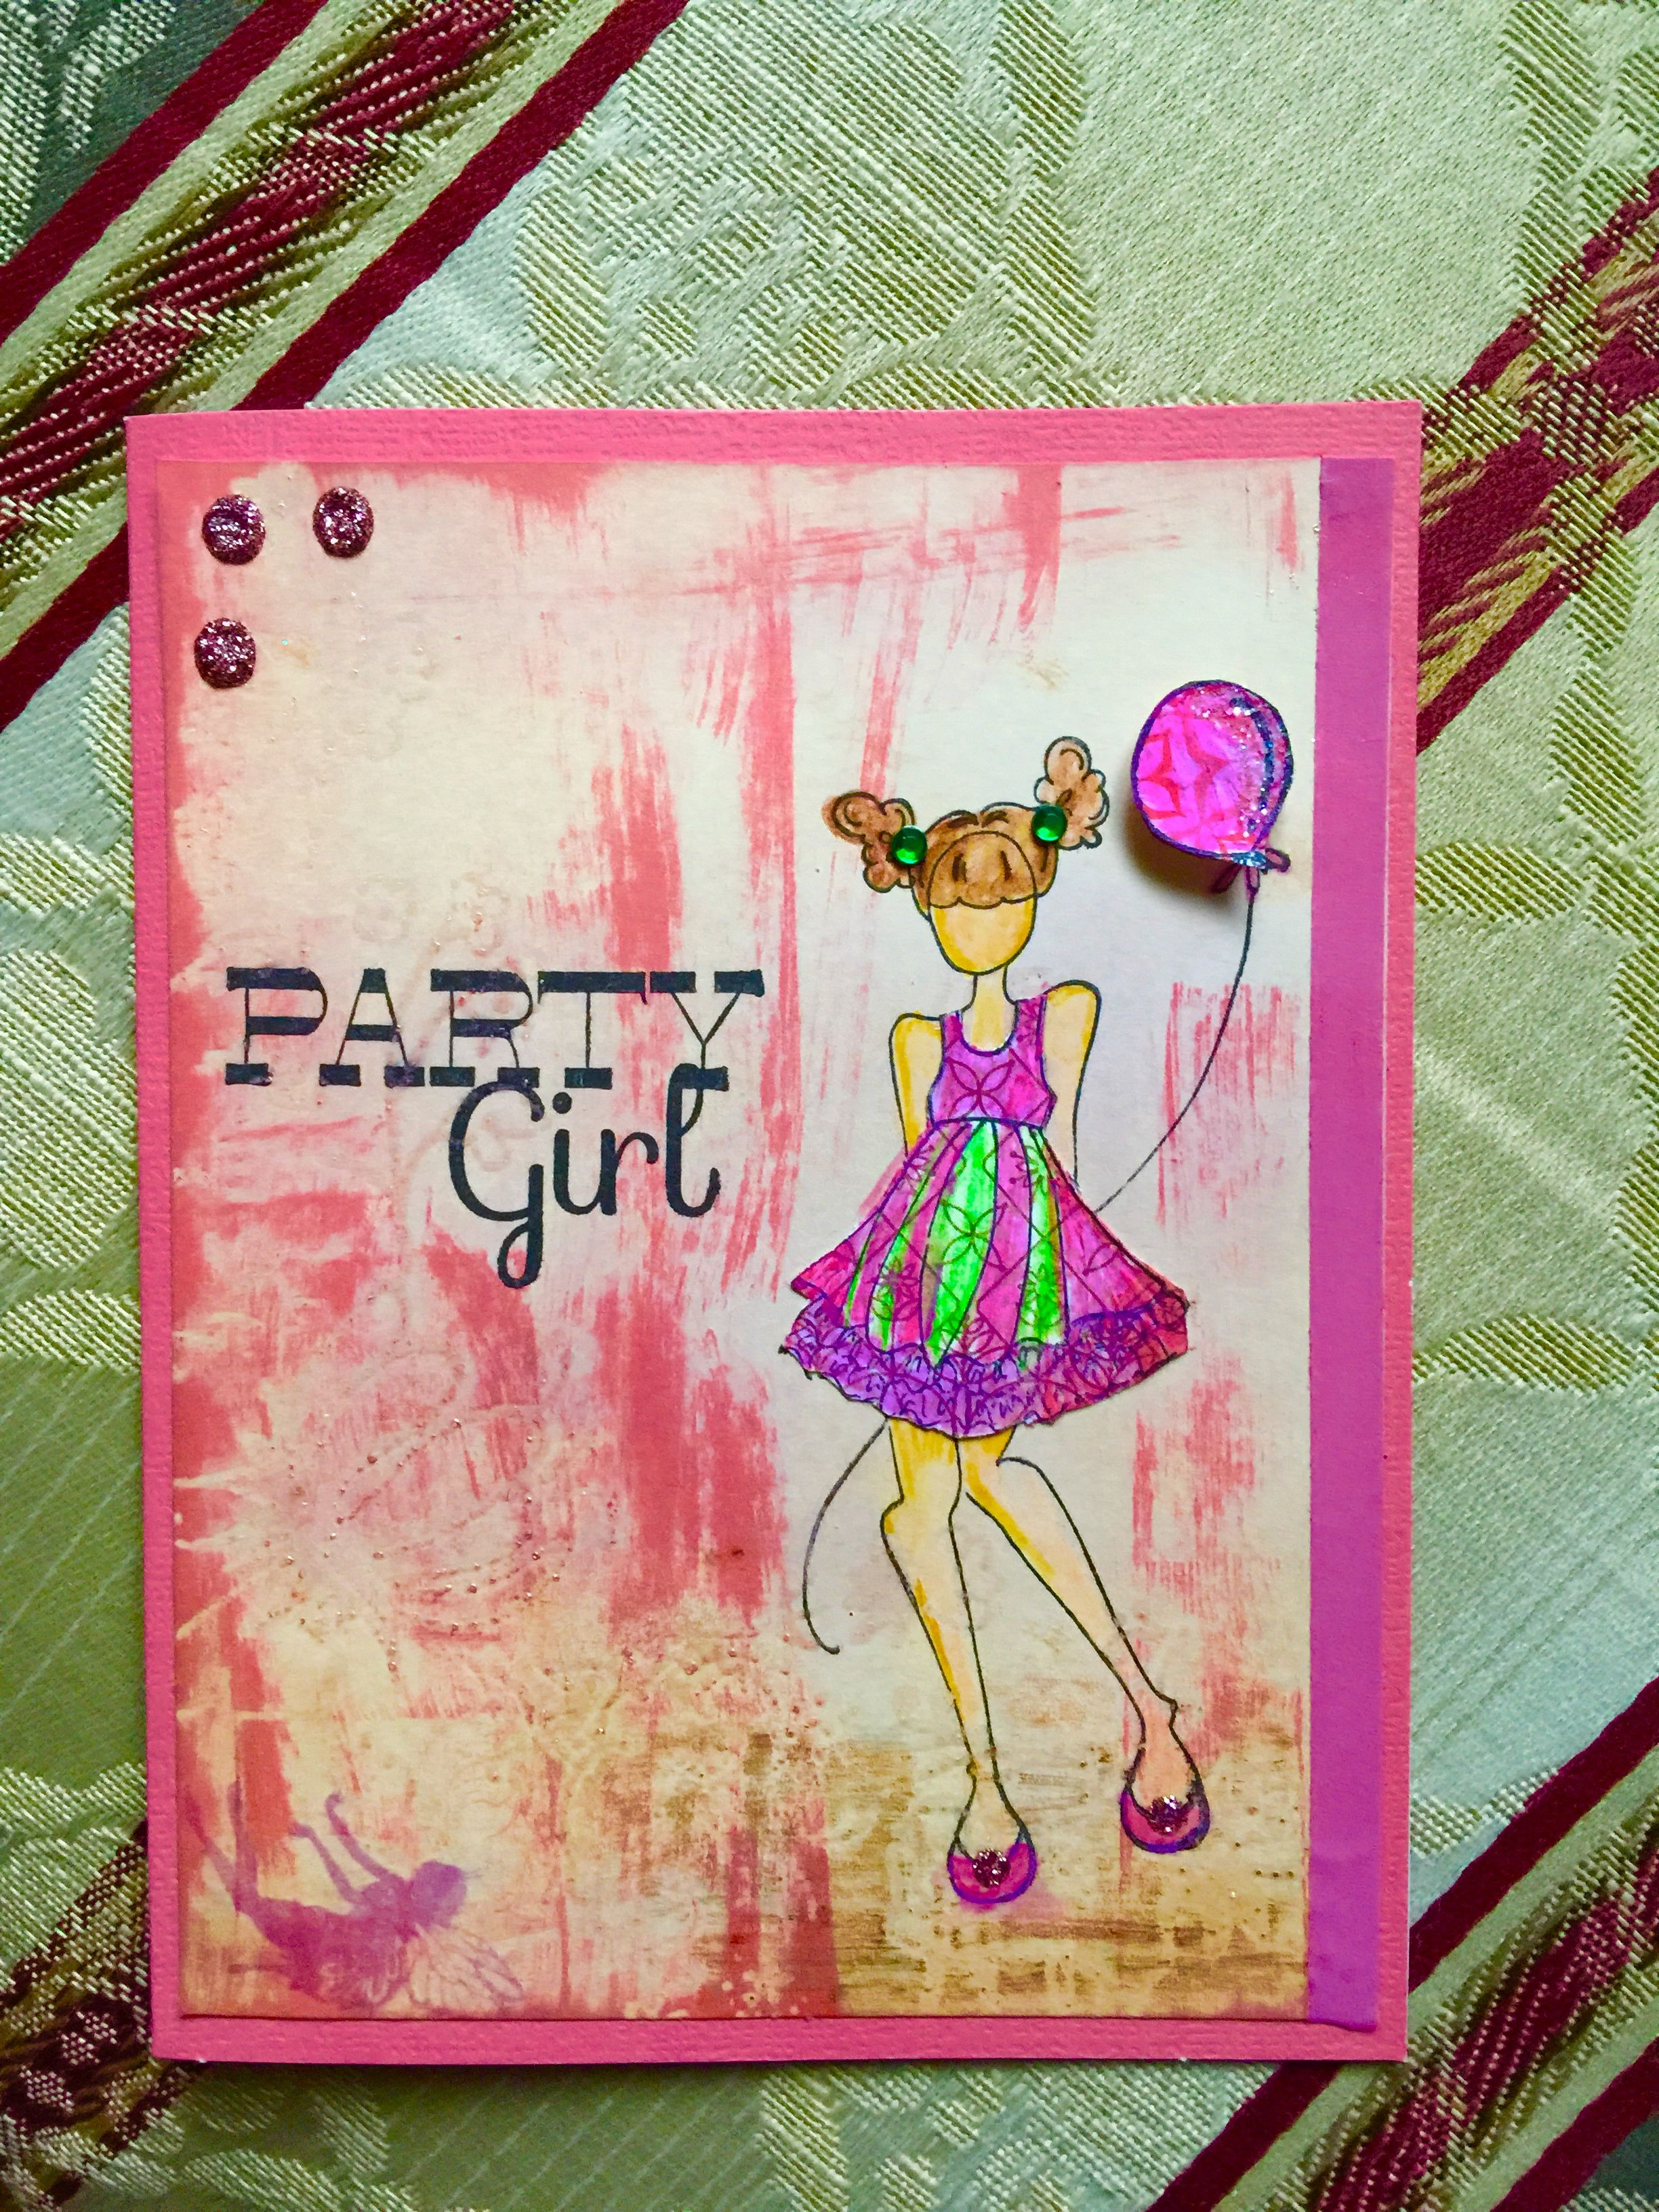 Handmade birthday card party girl stamp by Julie nutting